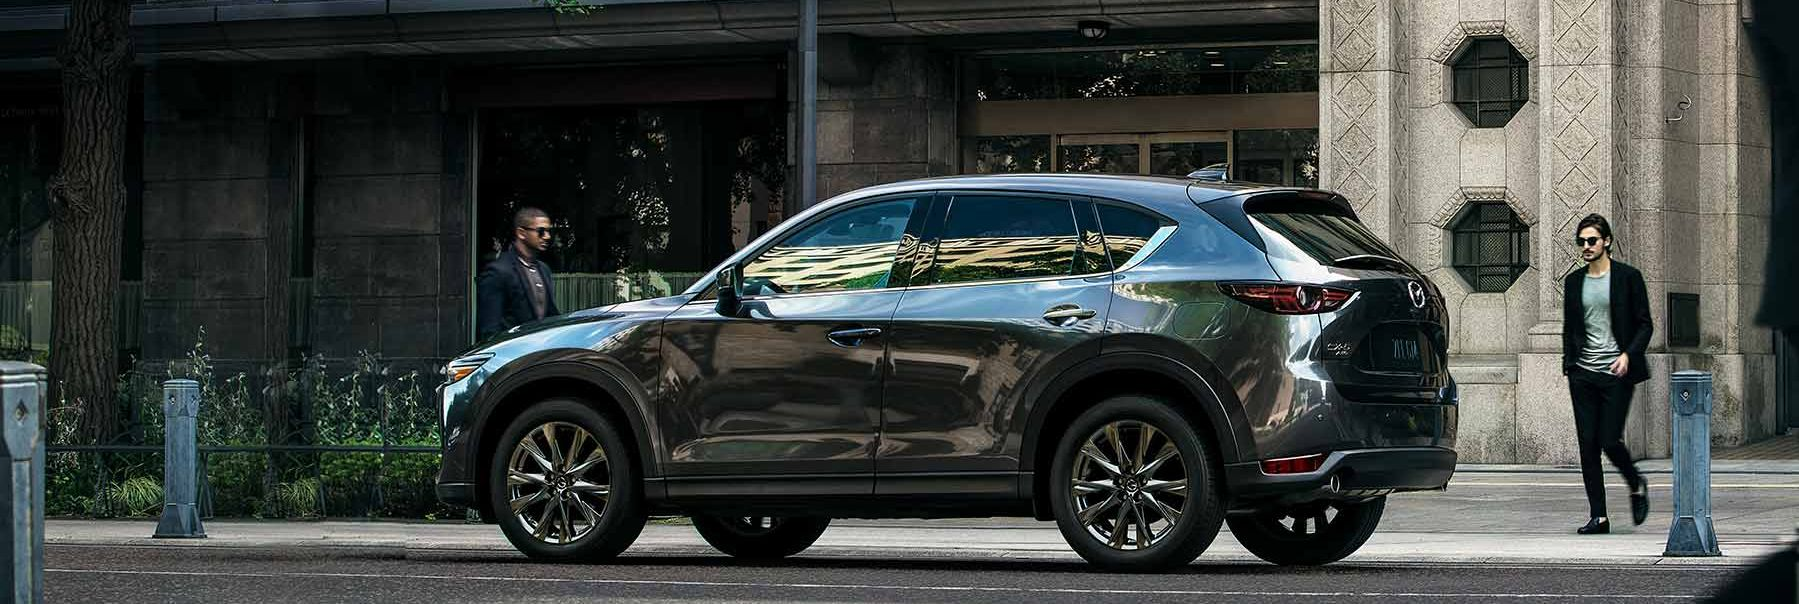 2019 Mazda CX-5 Financing near Rockville, MD